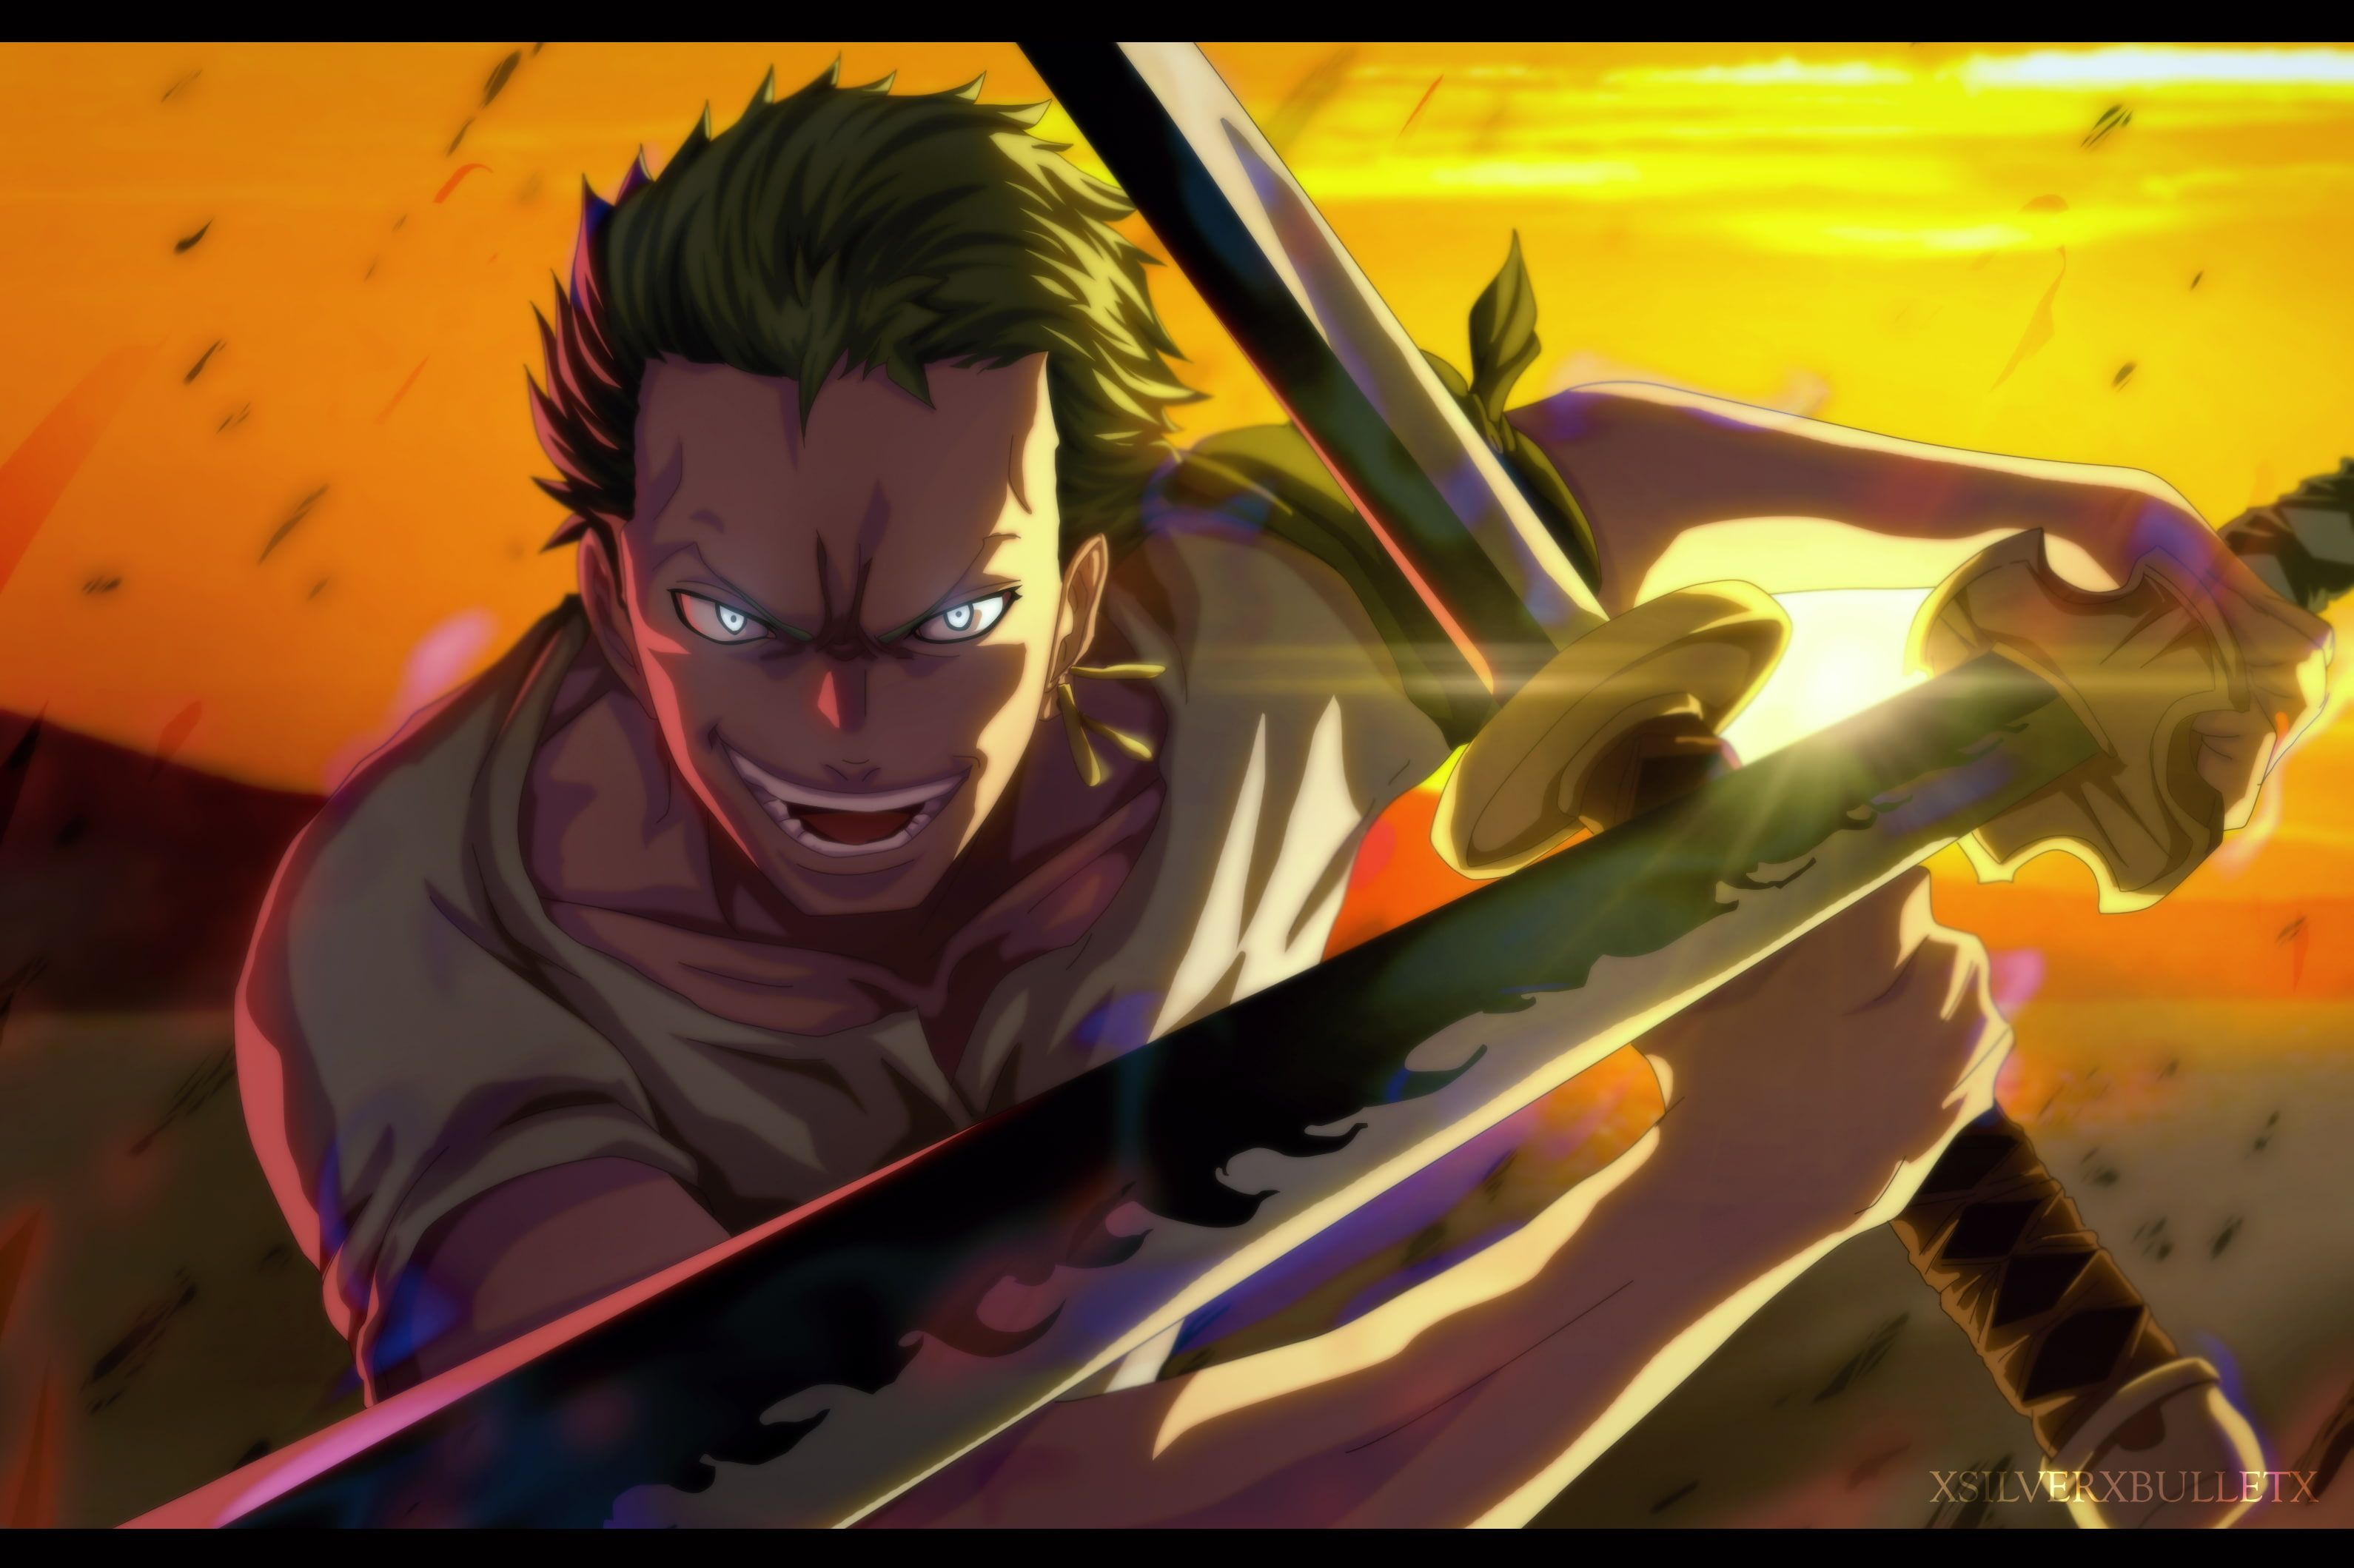 One Piece Roronoa Zoro Katana Green Hair 2k Wallpaper Hdwallpaper Desktop One Piece Wallpaper Iphone Roronoa Zoro Chibi Wallpaper